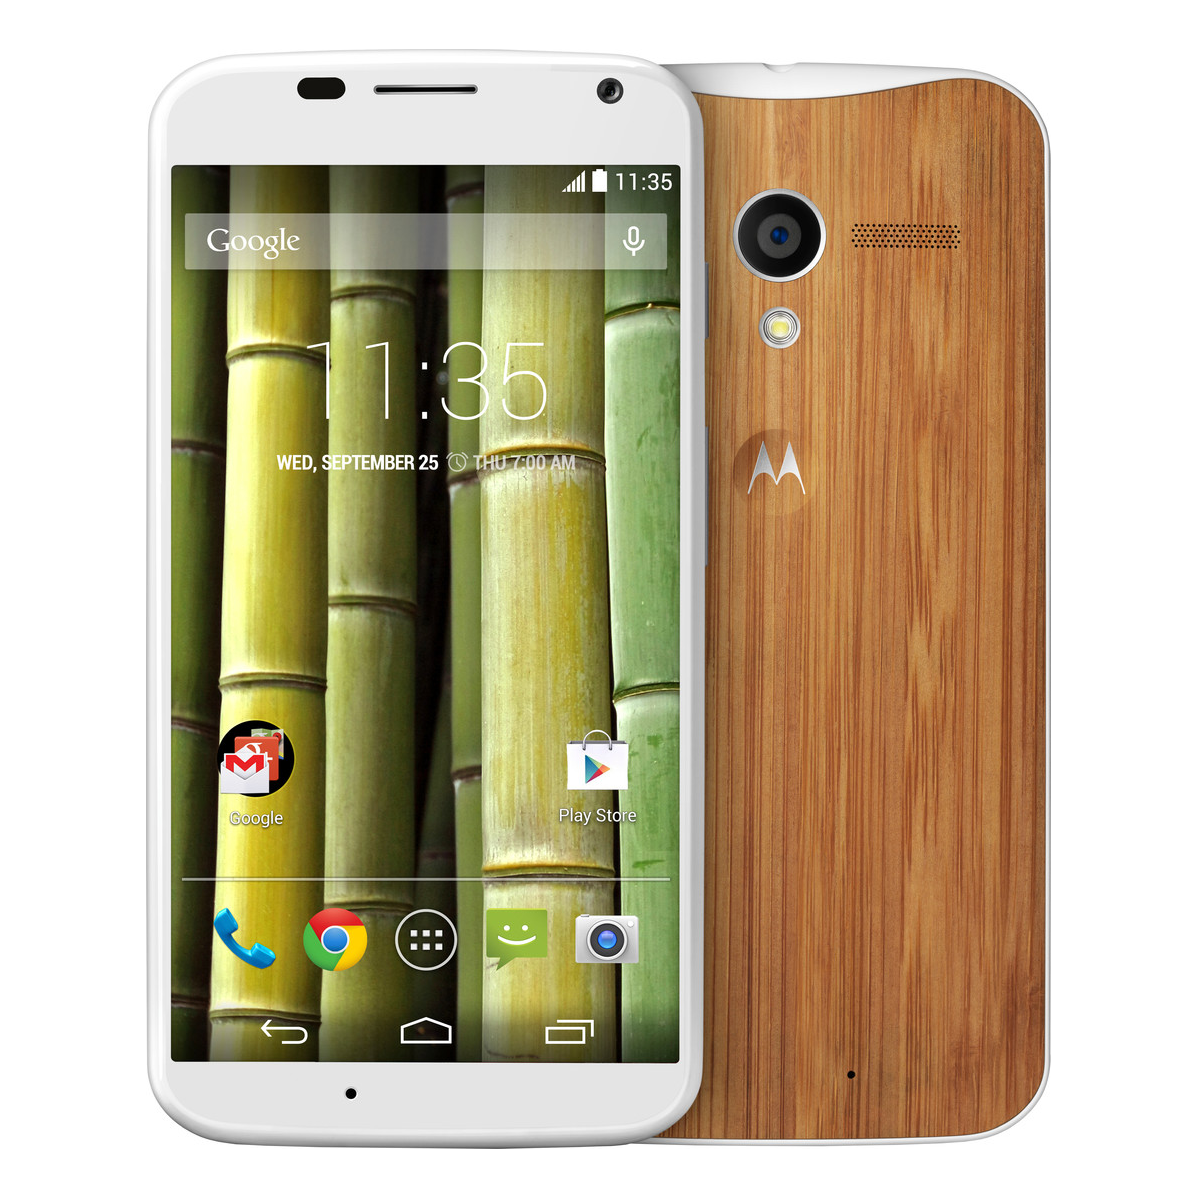 Motorola Moto X 16GB for Cricket Wireless Smartphone in White